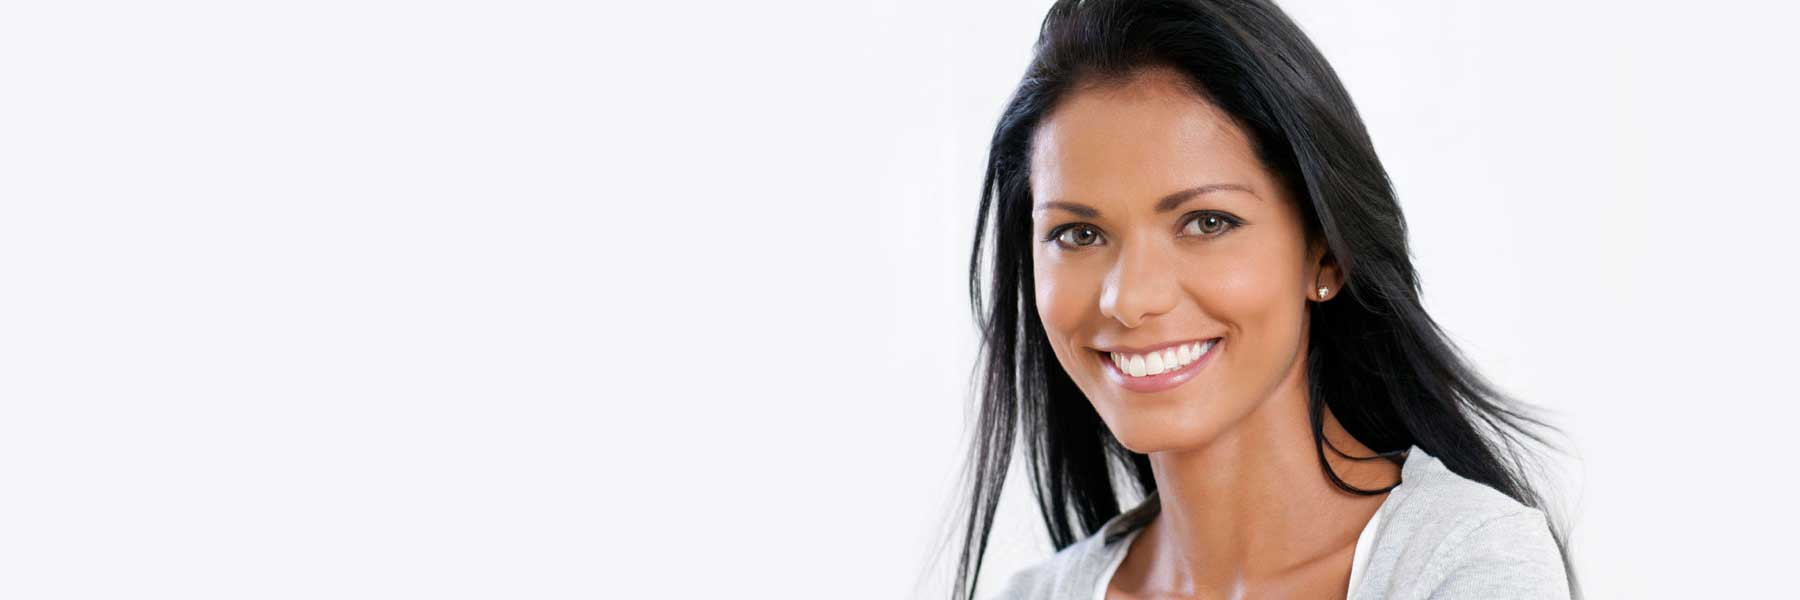 Cosmetic Dentistry in Broomfield CO banner image